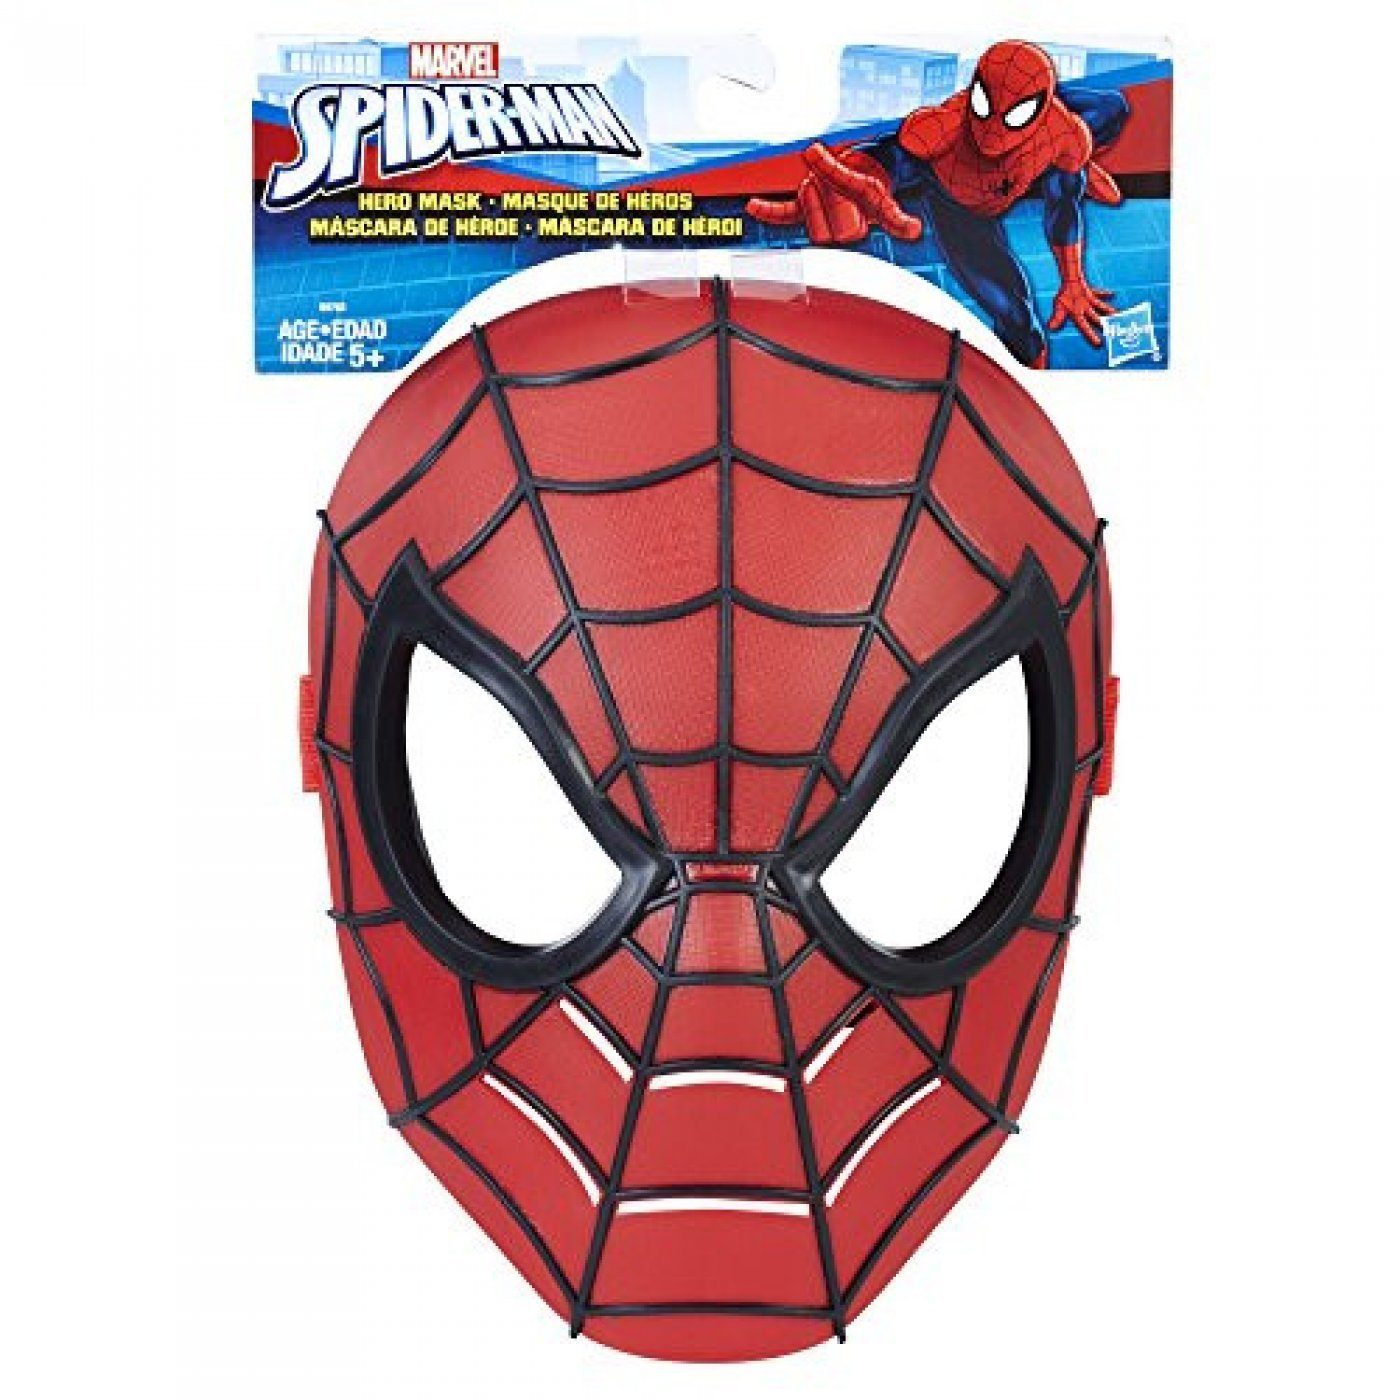 Mascara de Spiderman original de Hasbro